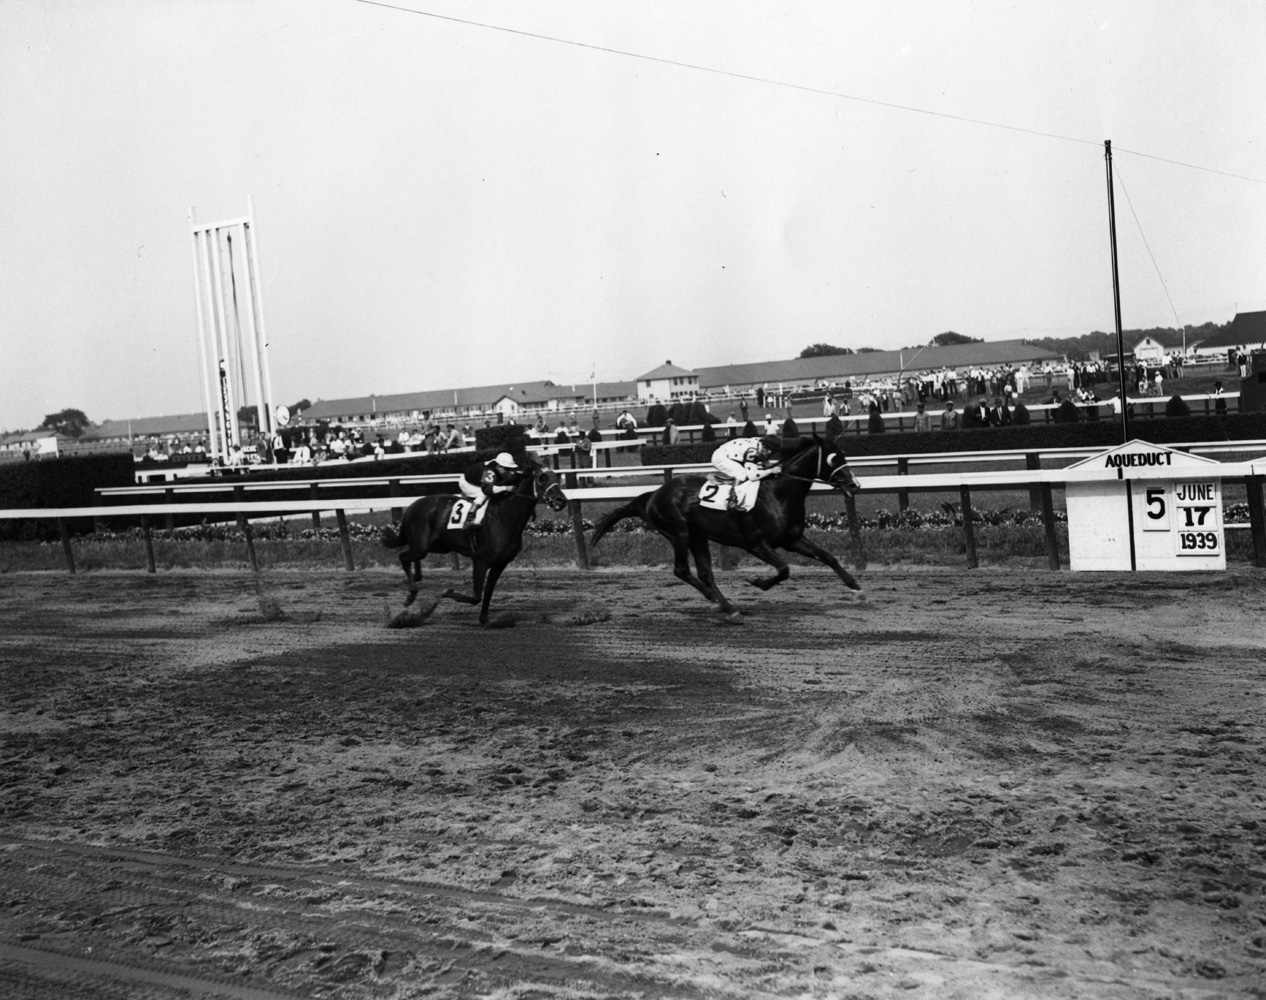 James Stout and Johnstown winning the 1939 Dwyer Stakes at Aqueduct (Keeneland Library Morgan Collection/Museum Collection)